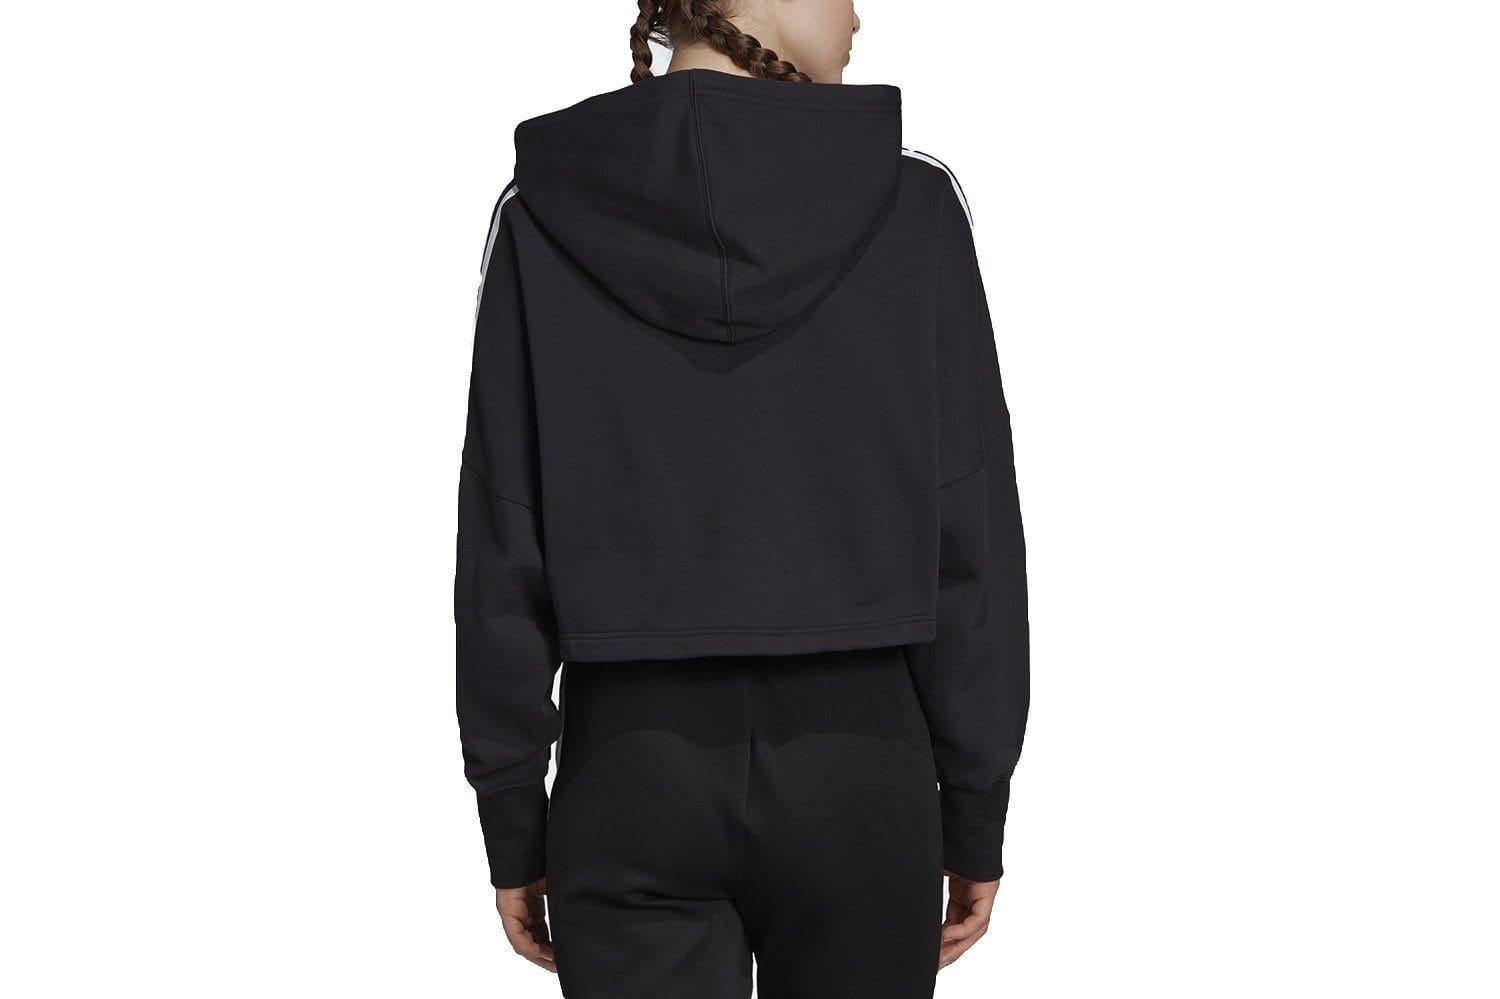 CROPPED HOOD - ED7554 WOMENS SOFTGOODS ADIDAS